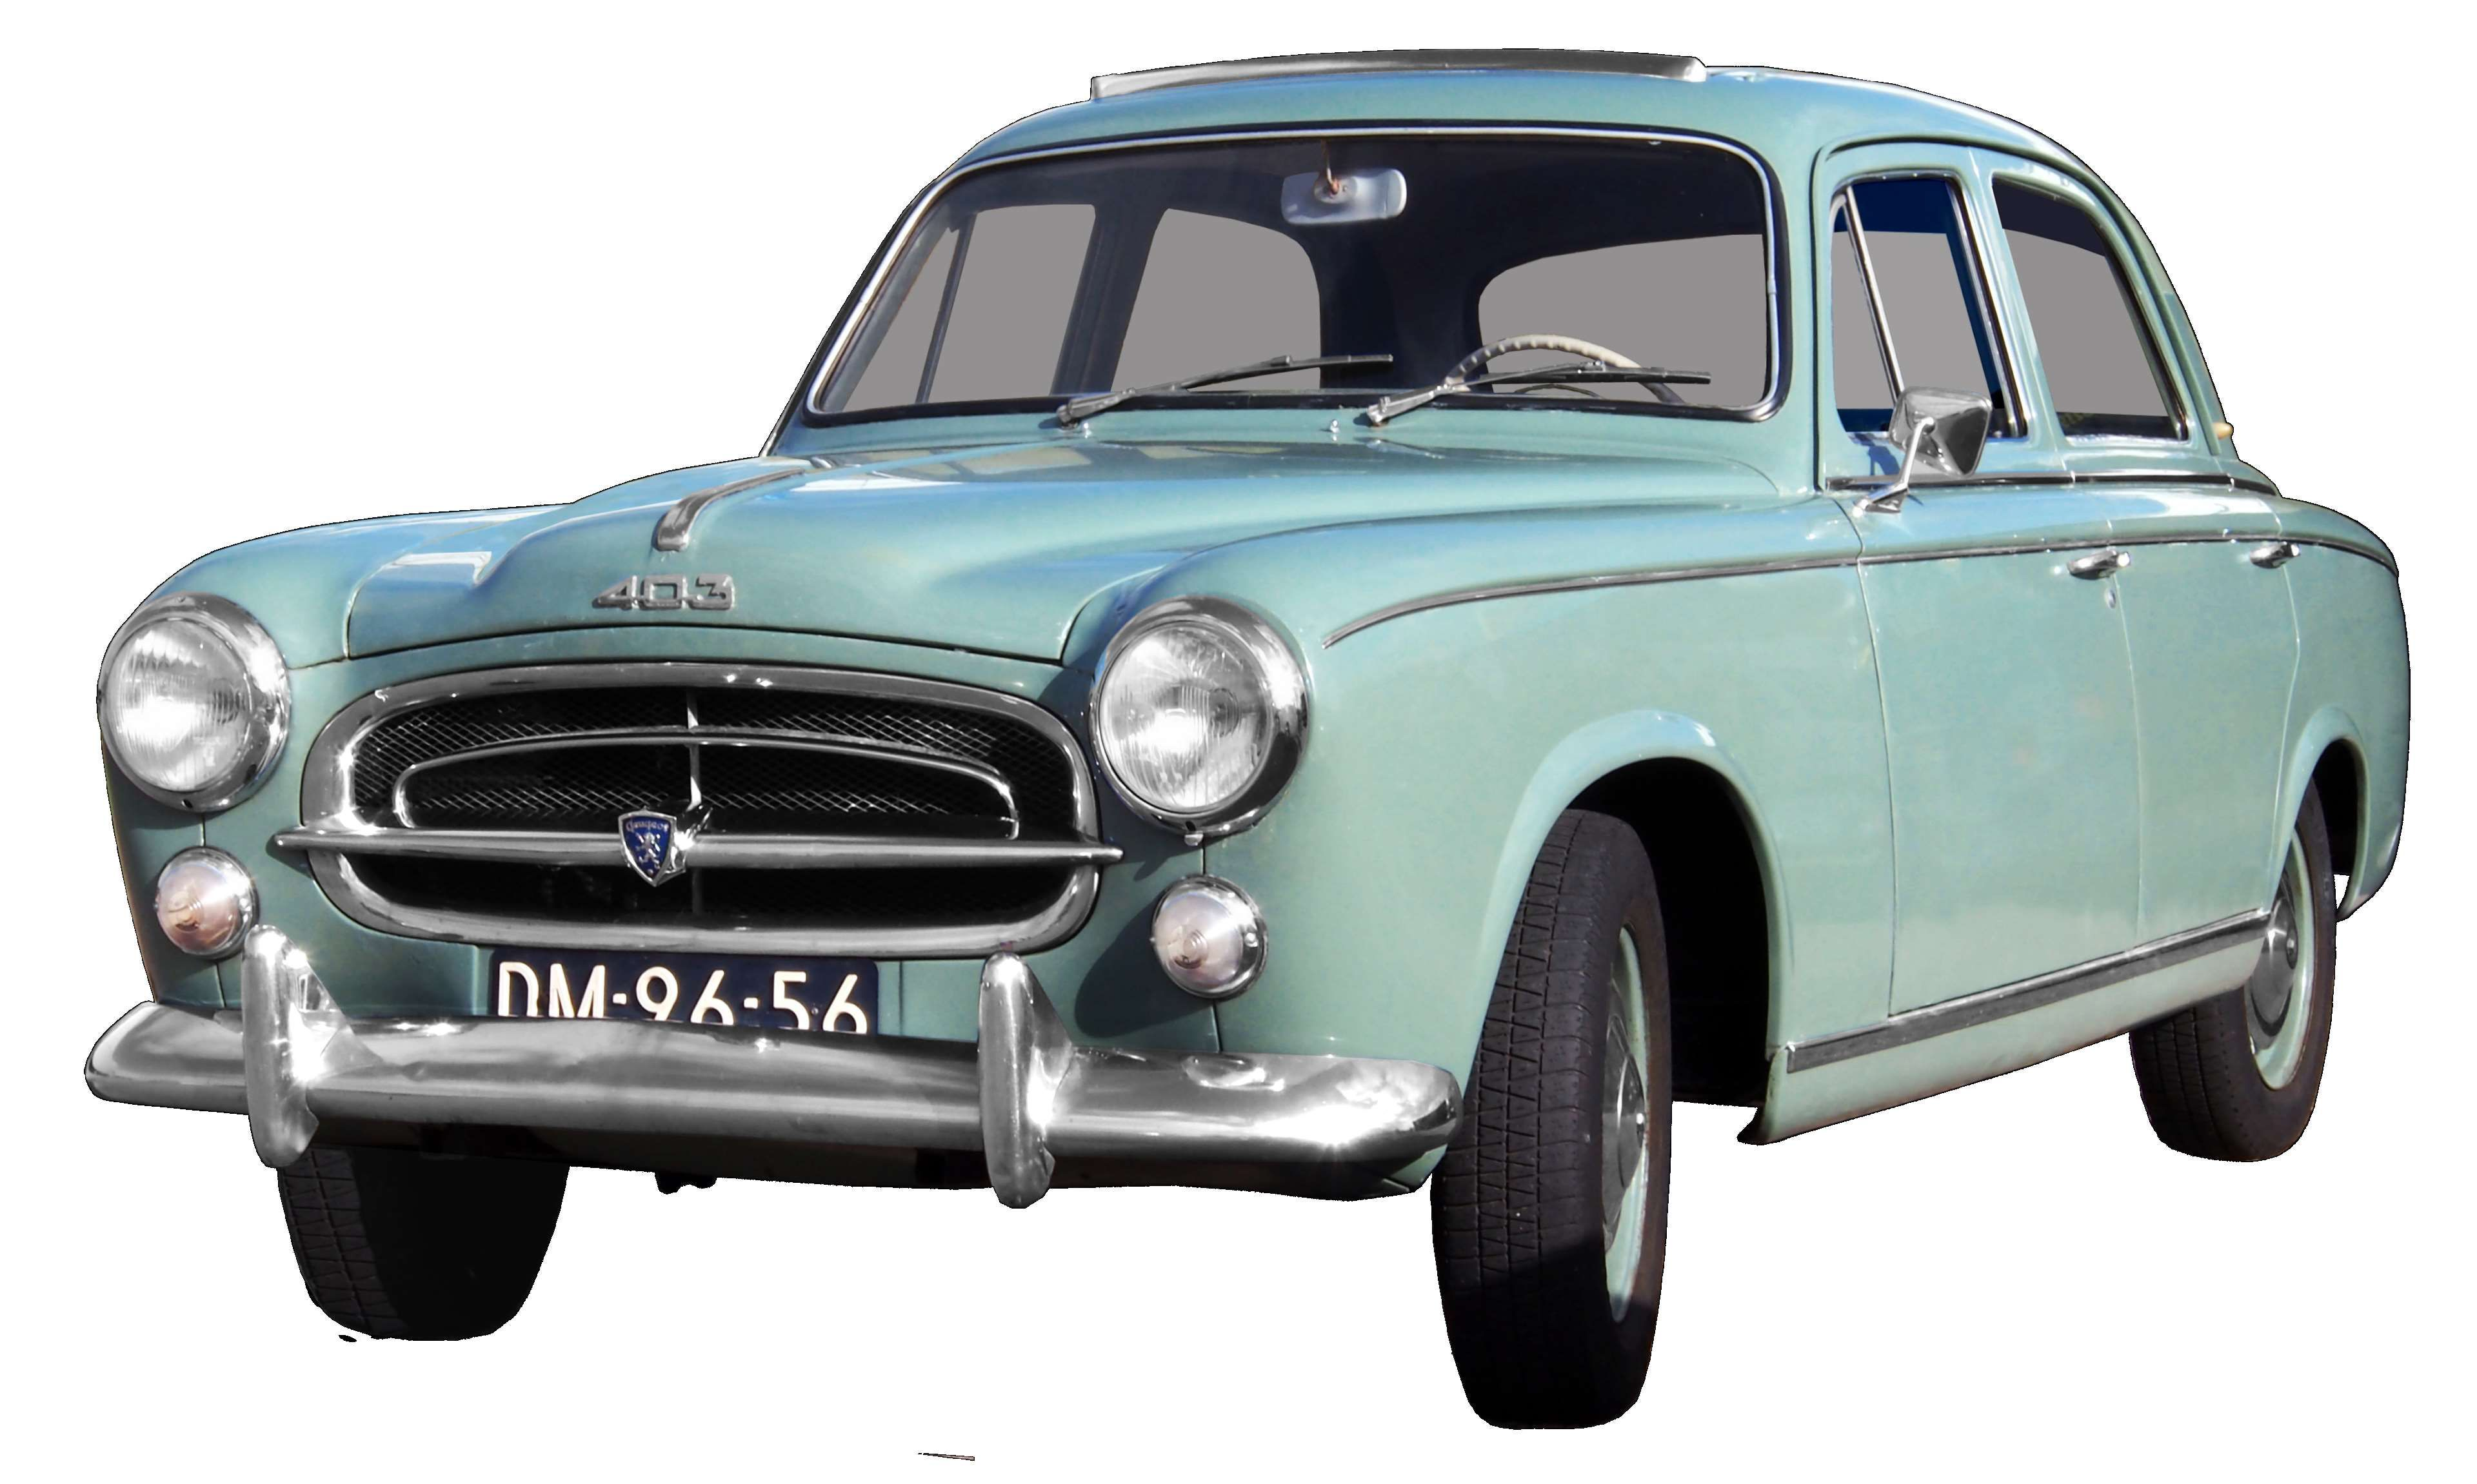 50 60ziger Years Auto Automotive Car Body Shape Classic Exempted And Edited France Historically Limousine Locomotion Old Old Cars Oldtimer Portugal